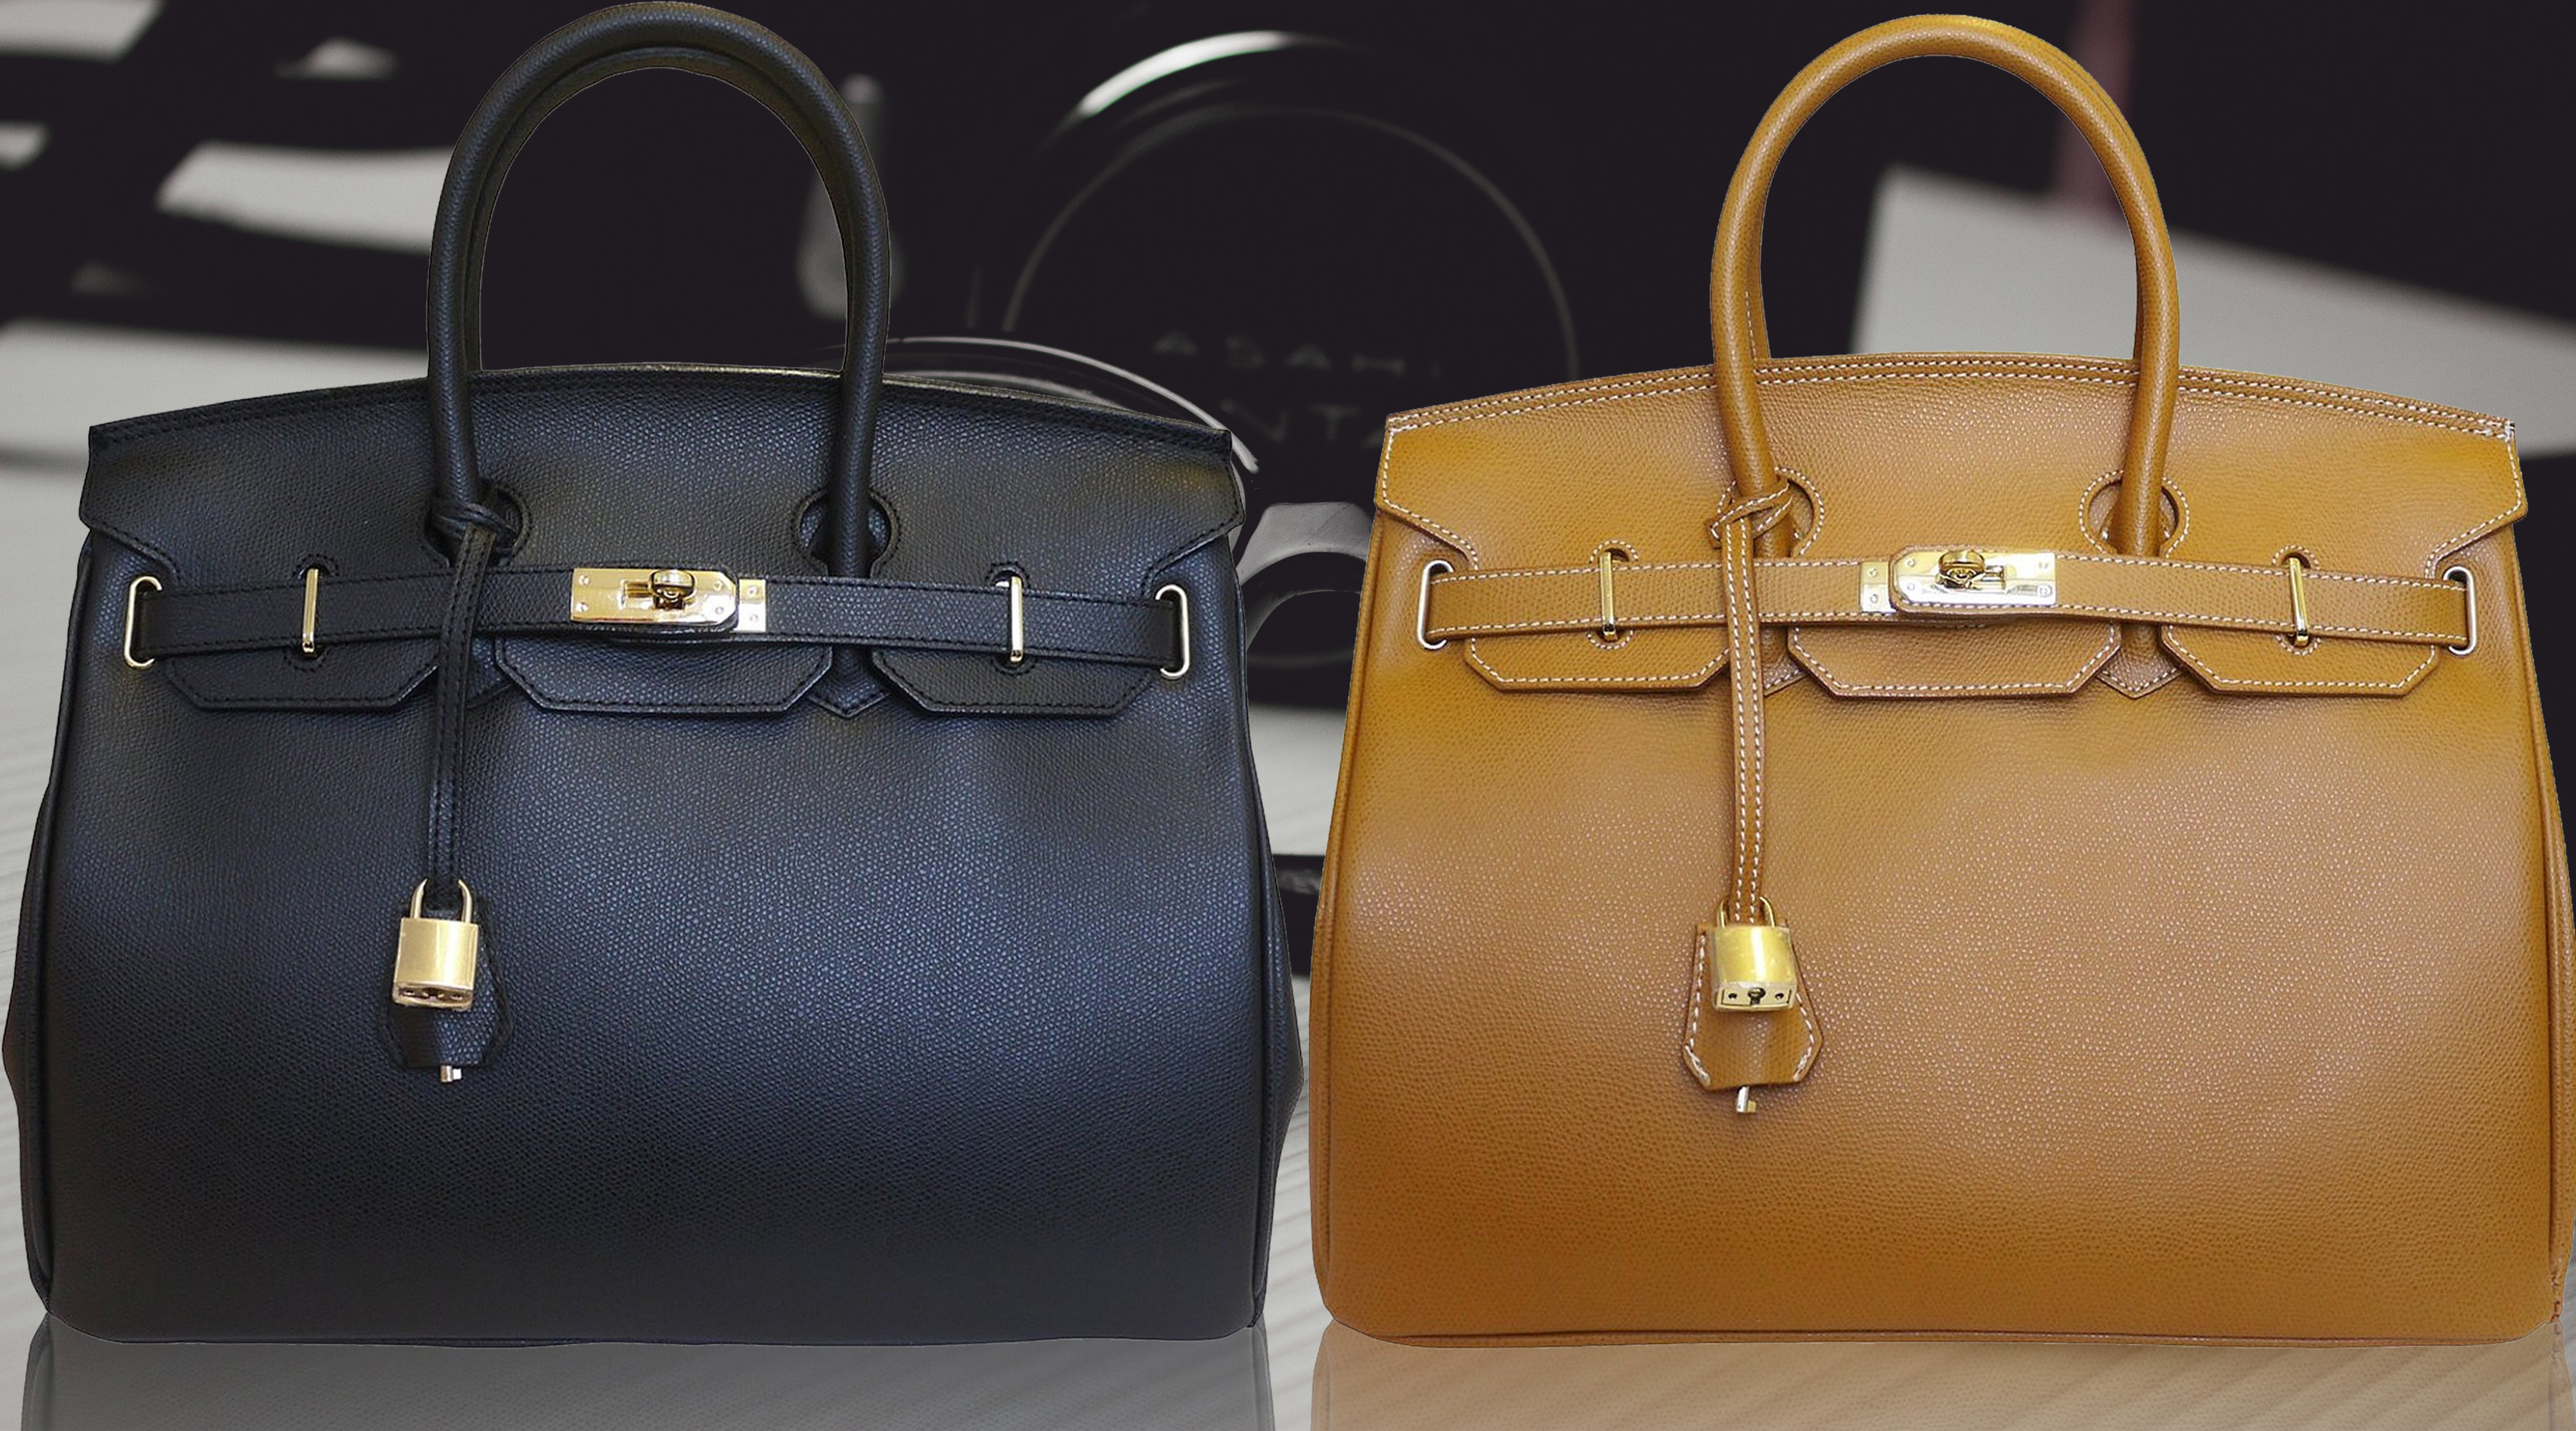 f53800df7c0e Amazon cheap Birkin bags alternatives  - My Fashion Wants